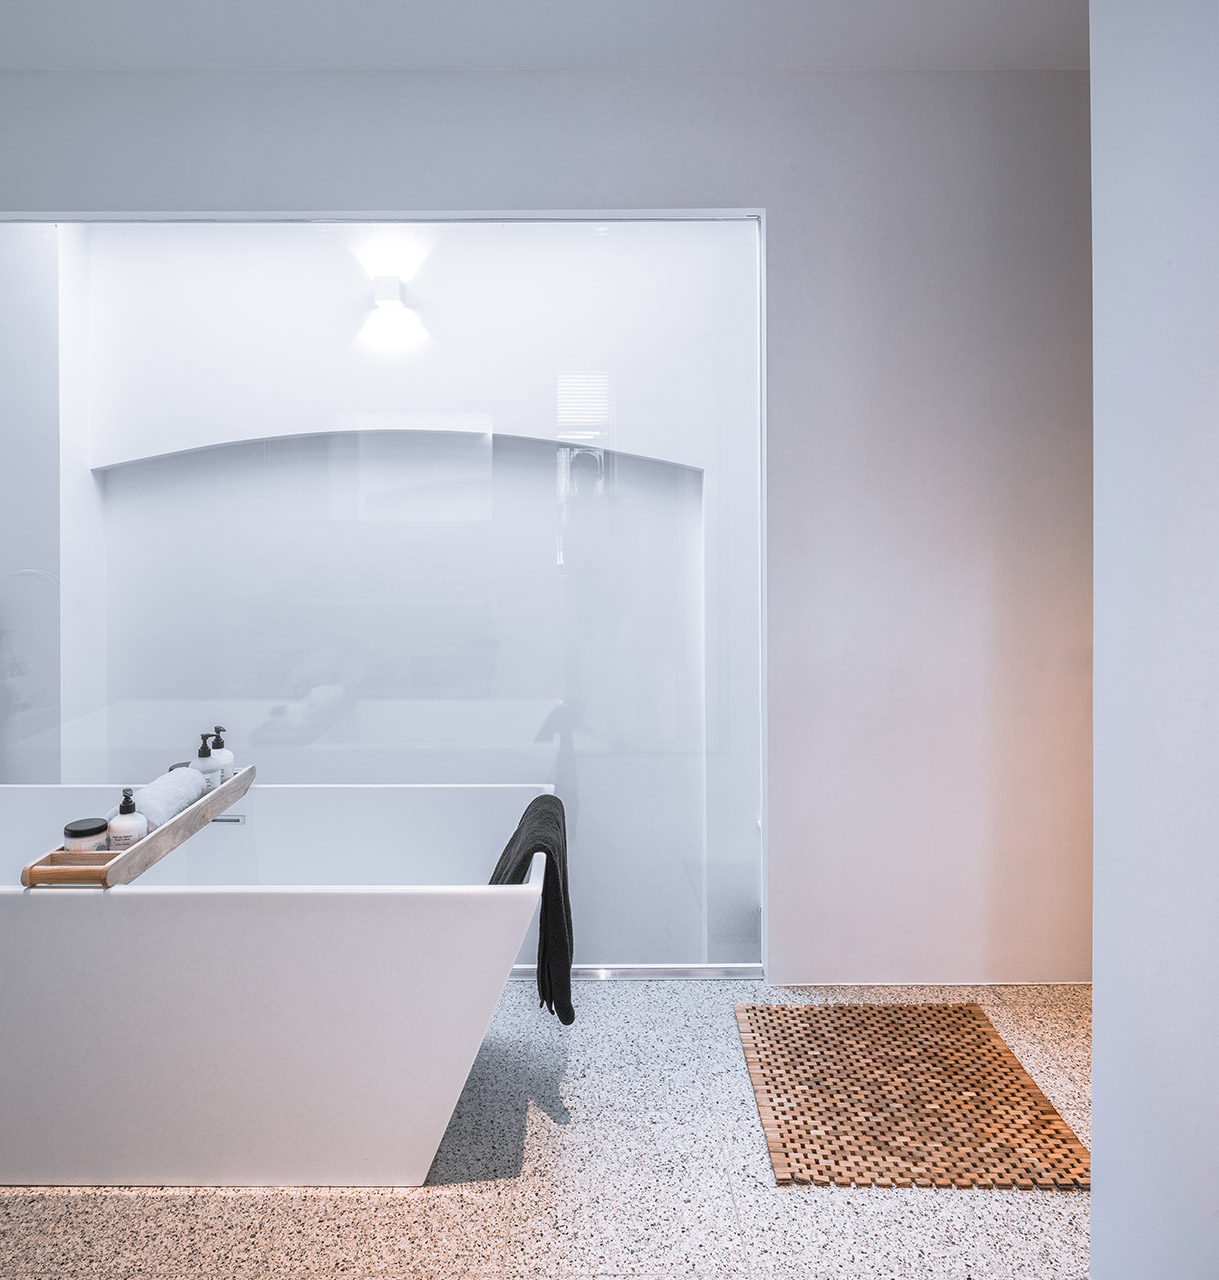 loft-eva-architecten-08-bathroom